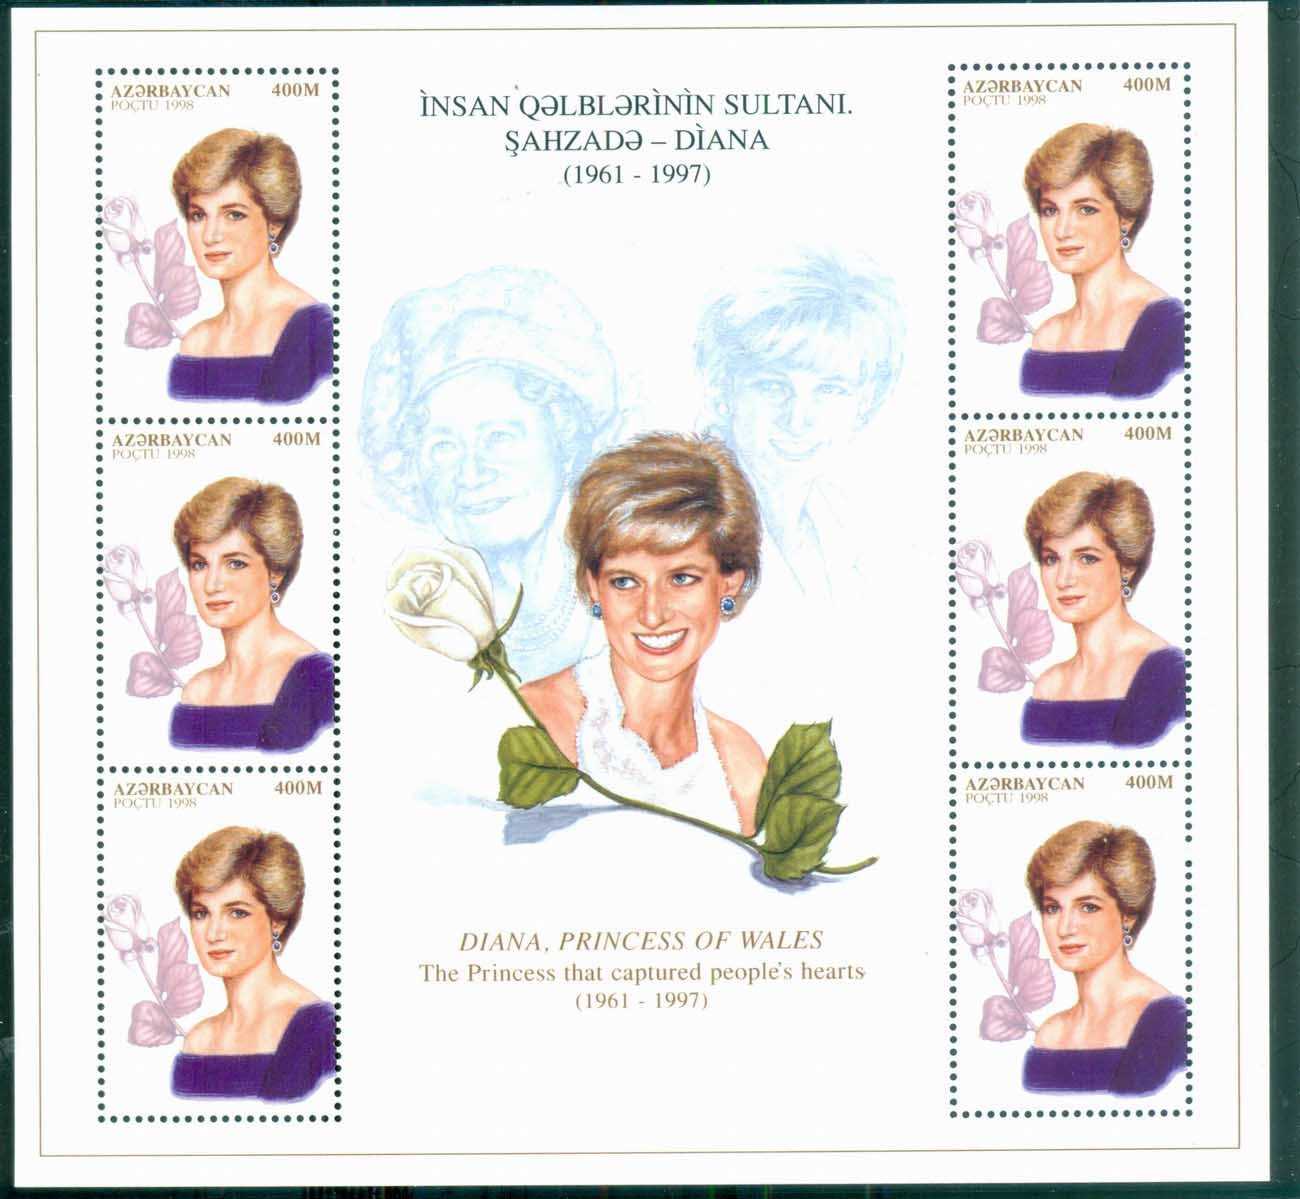 Azerbaijan 1998 Princess Diana in Memoriam, Portrait of a Princess & Queen MS MUH